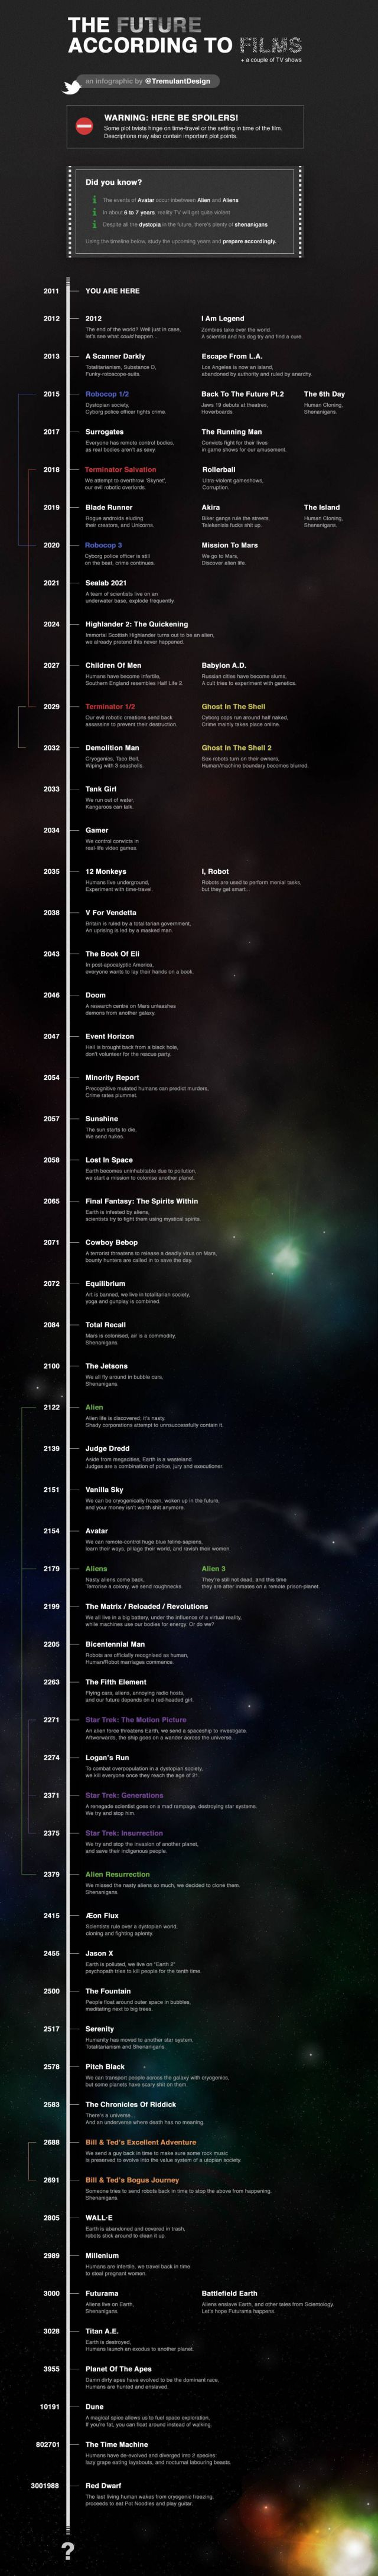 Timeline of Our Future According to Sci-Fi Films and TV Shows